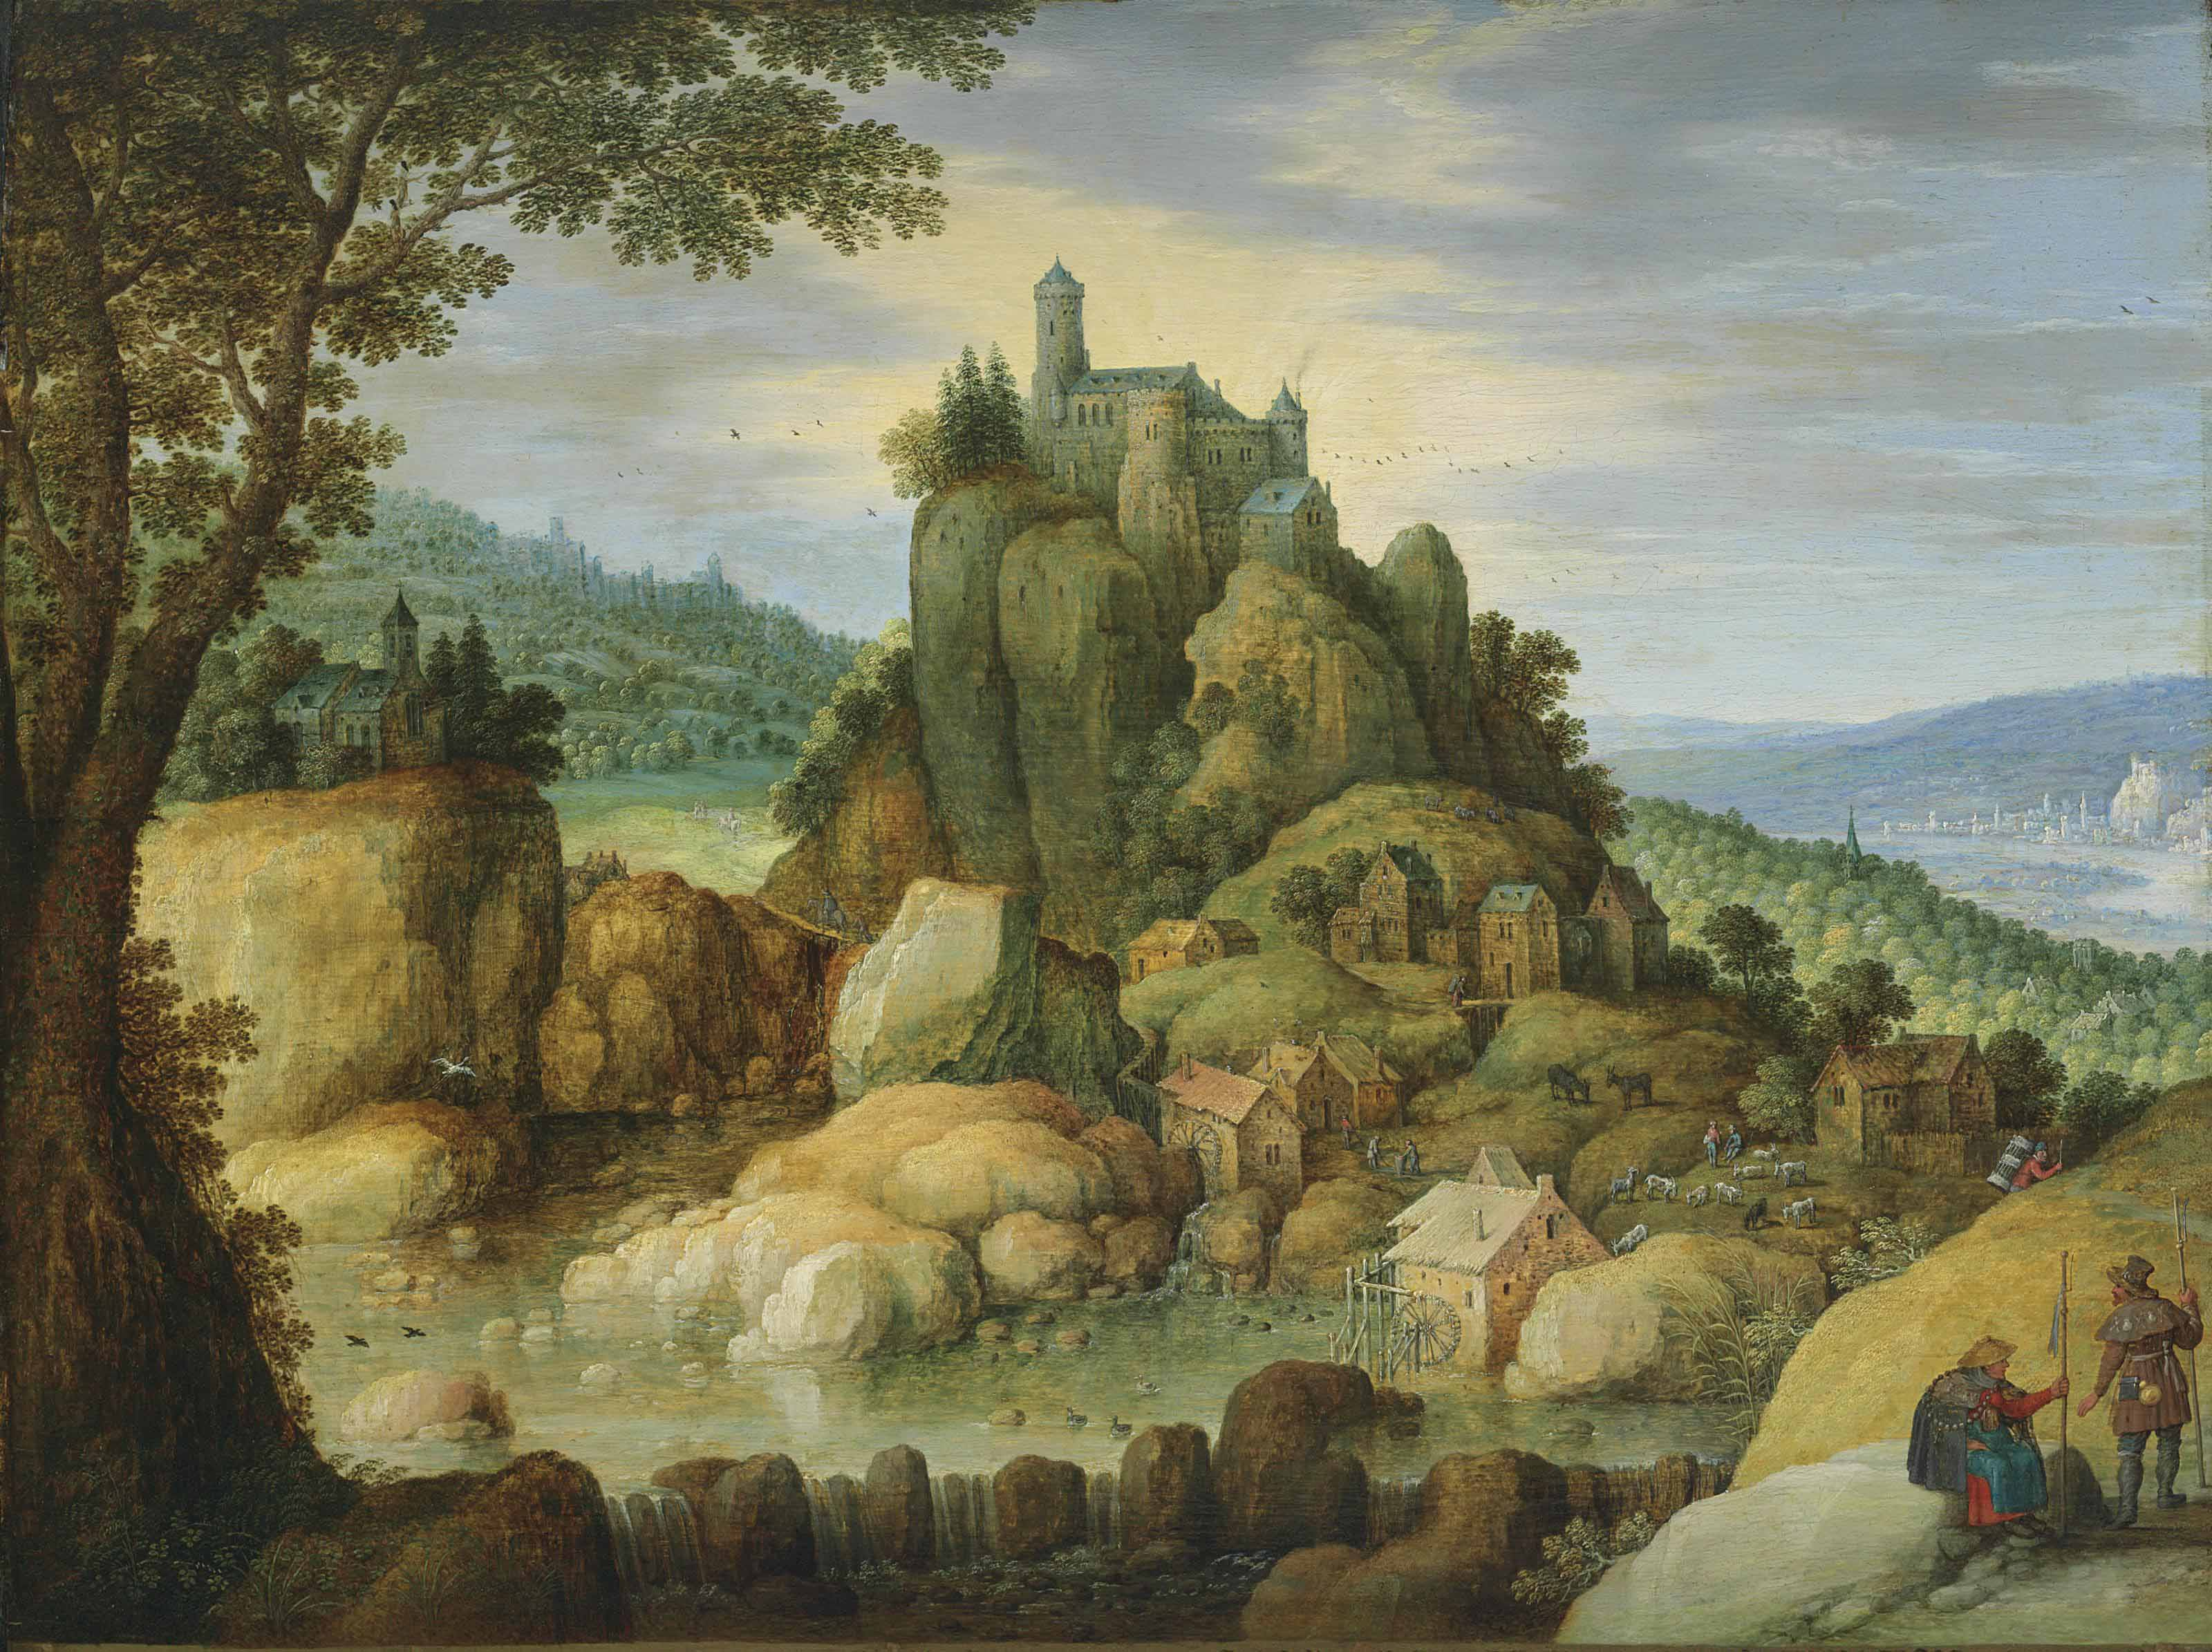 An extensive rocky river landscape with pilgrims on a path by a castle on a hill